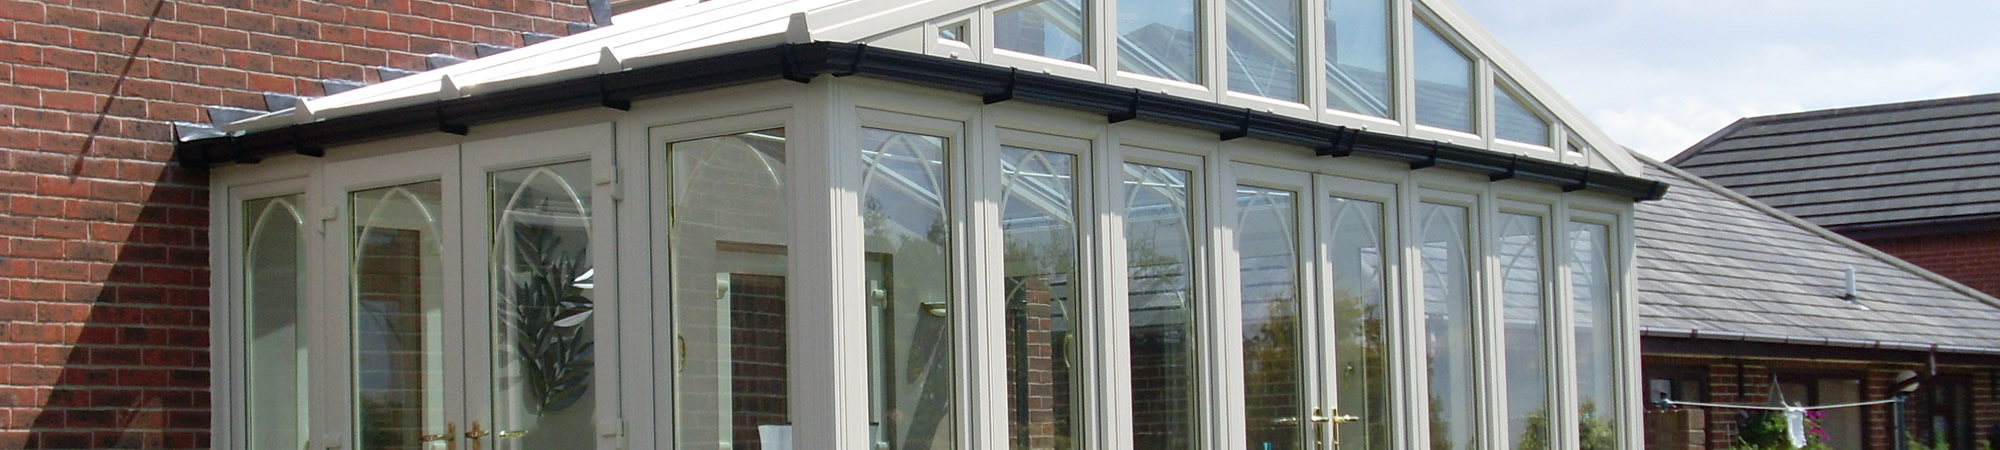 Conservatory installer in Thame